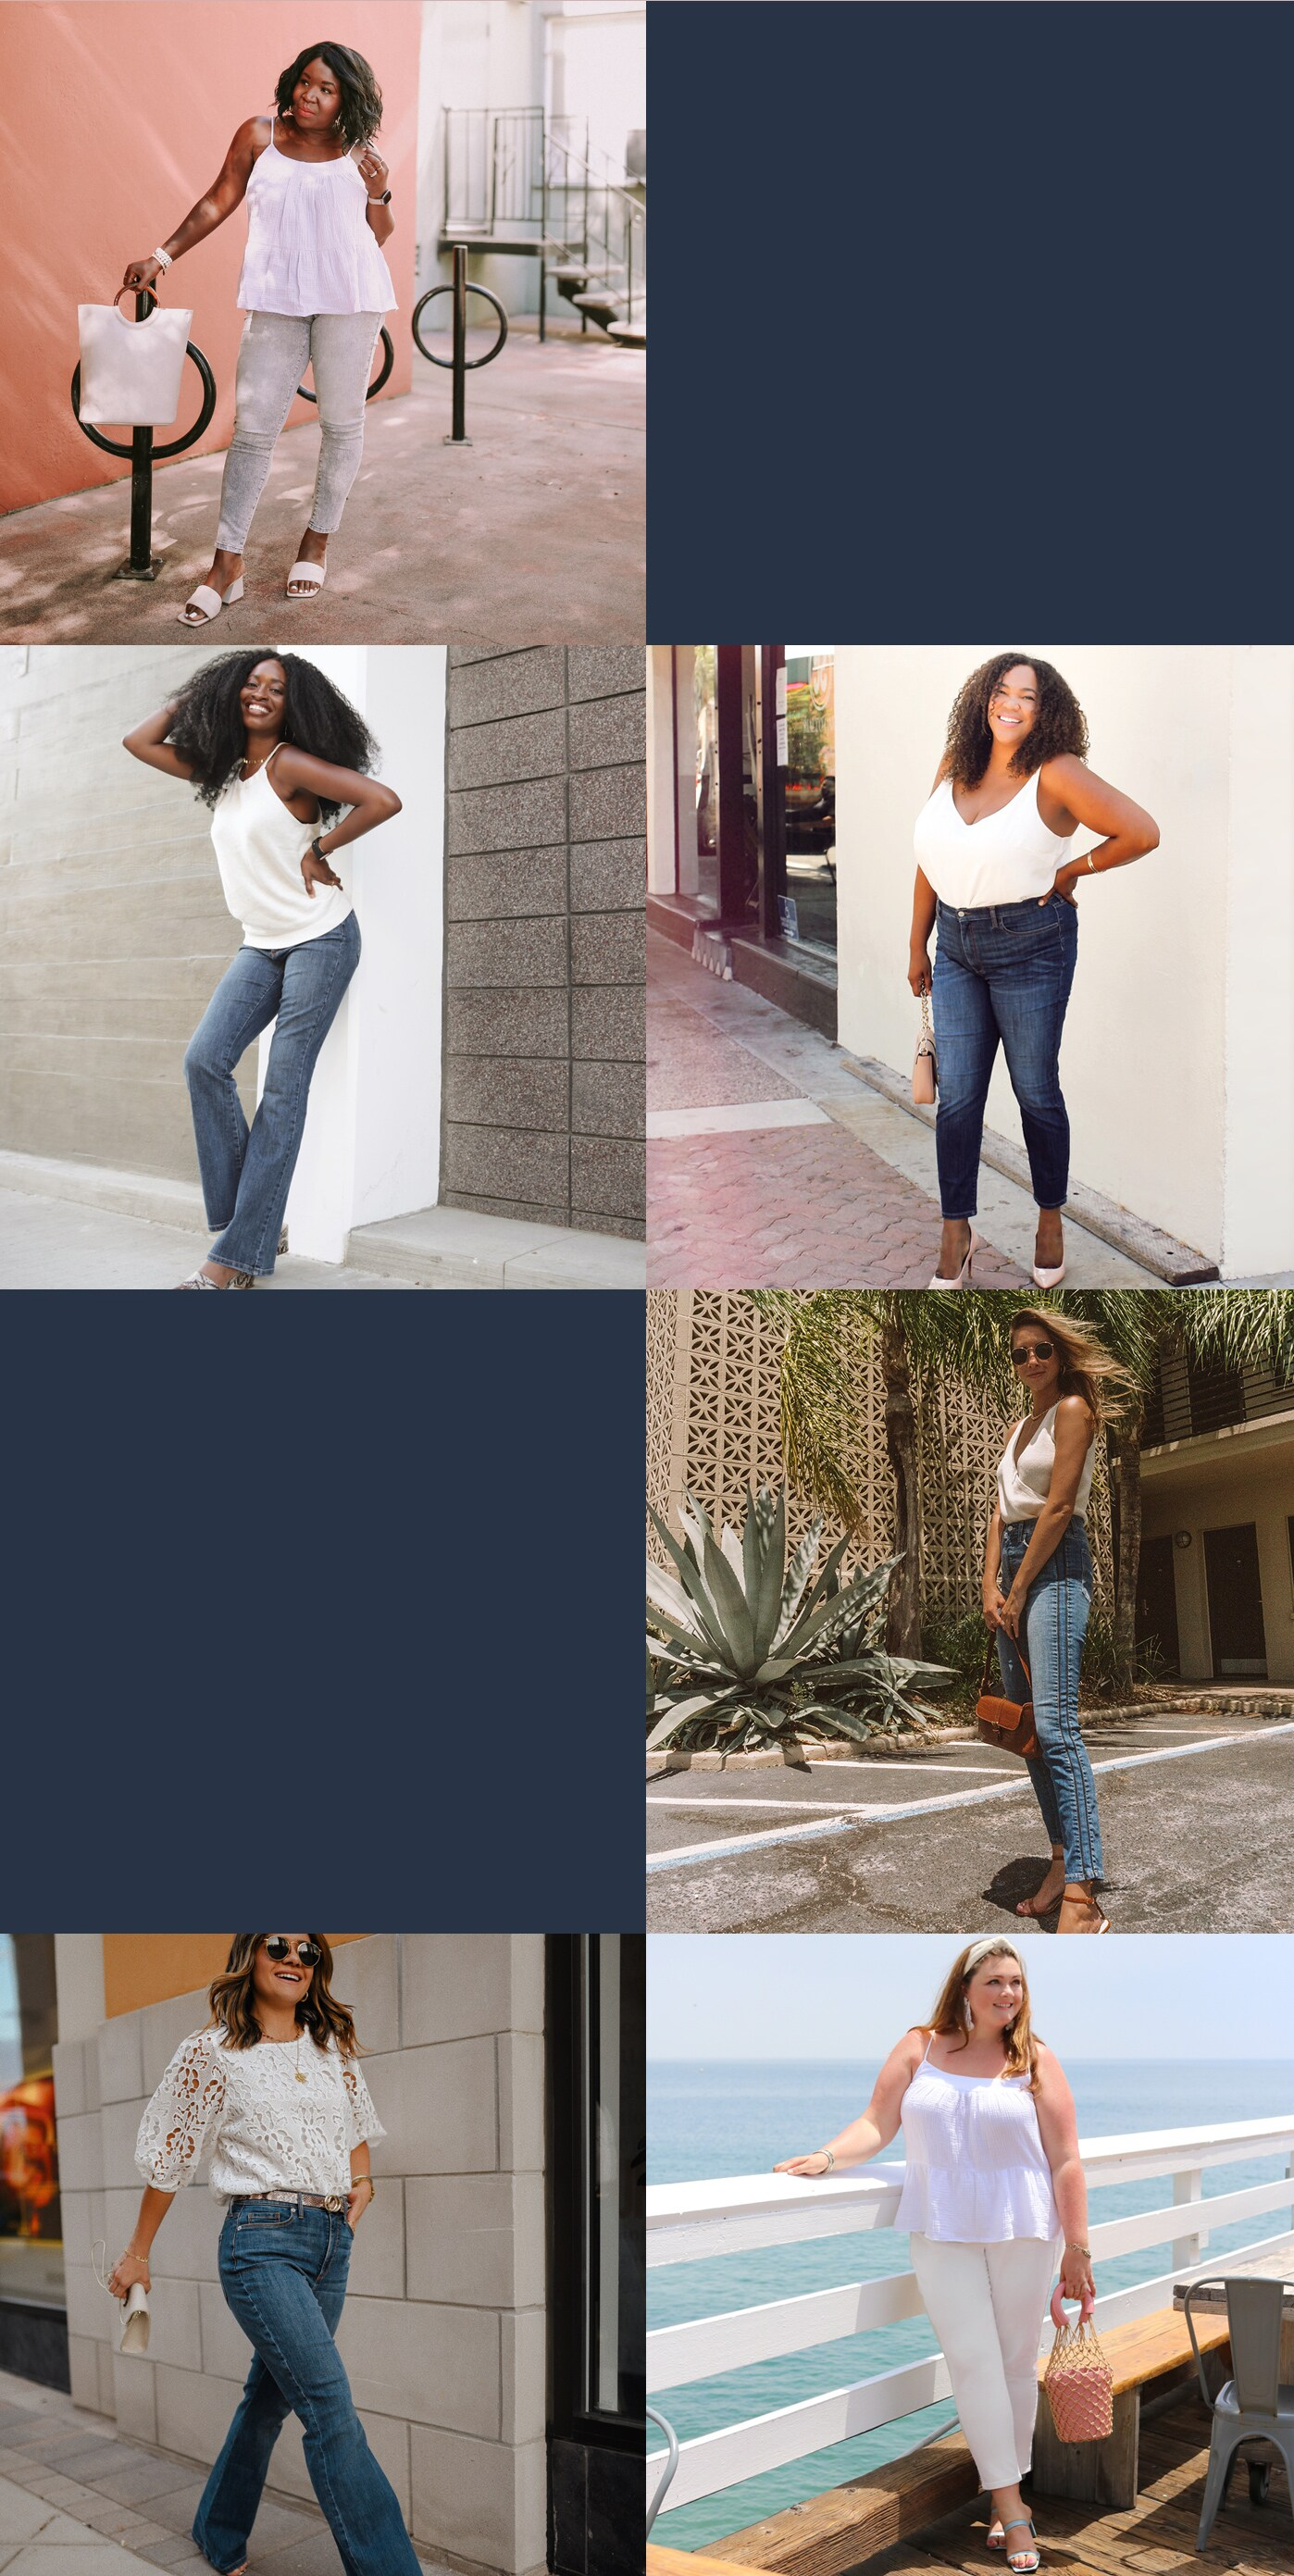 New Curvy Denim. Background Image